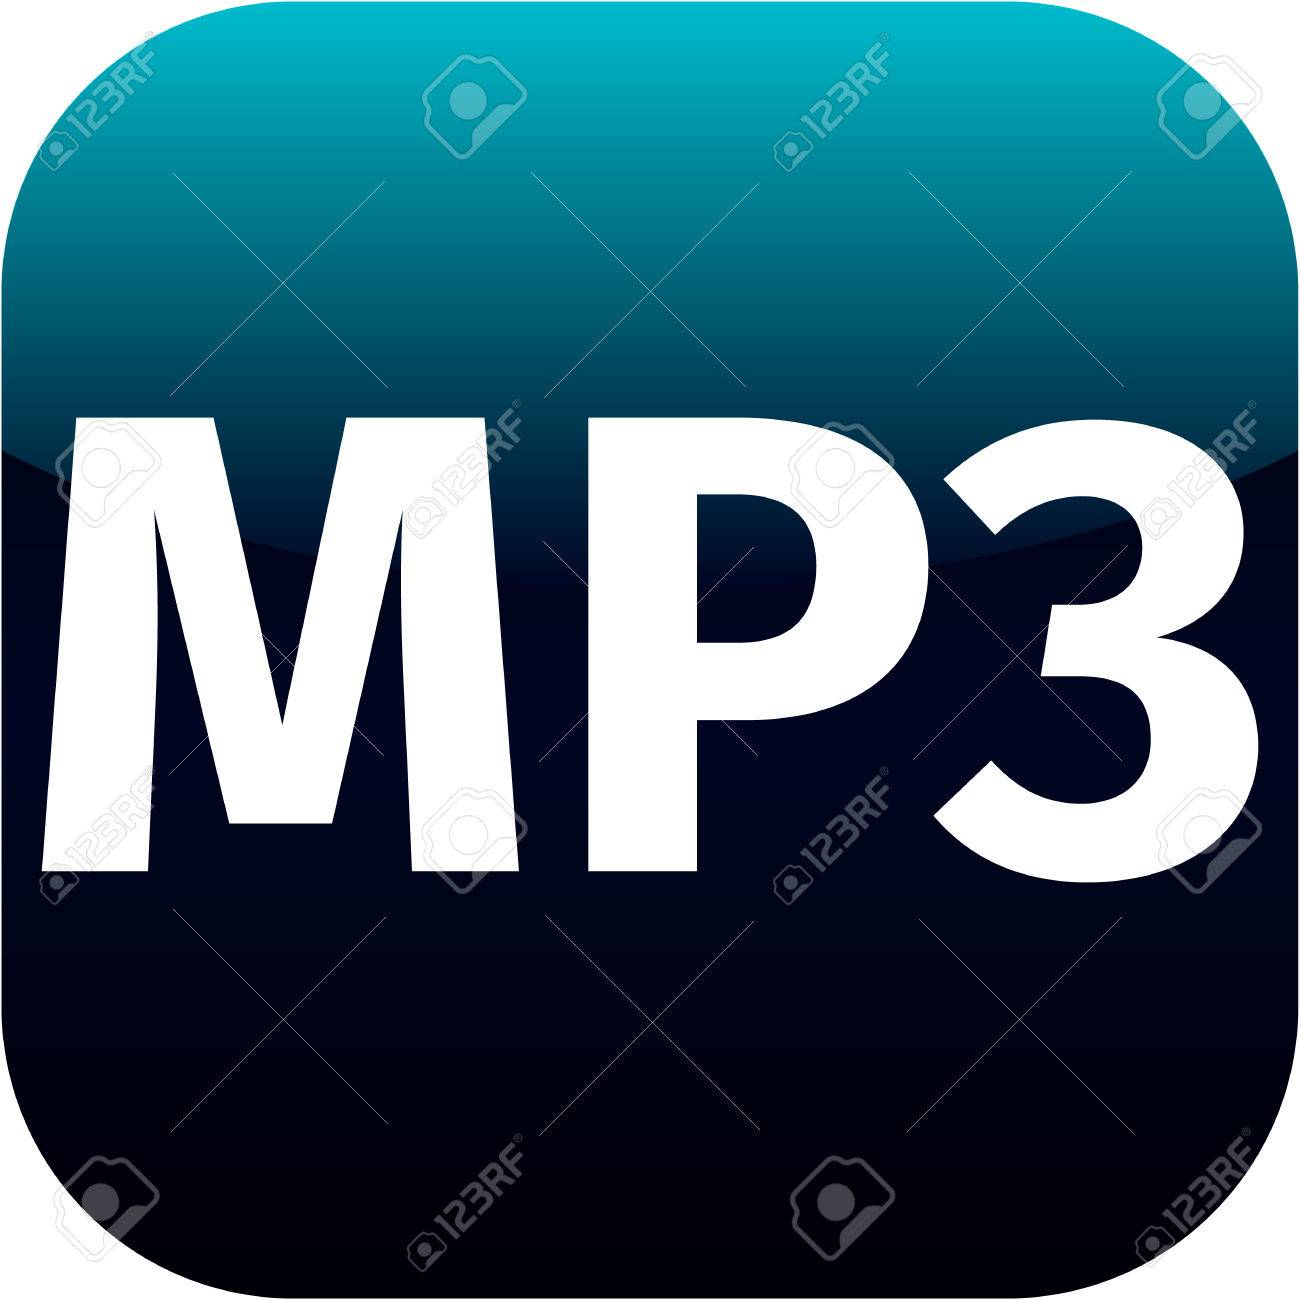 blue mp3 music download icon for web or phone app stock photo